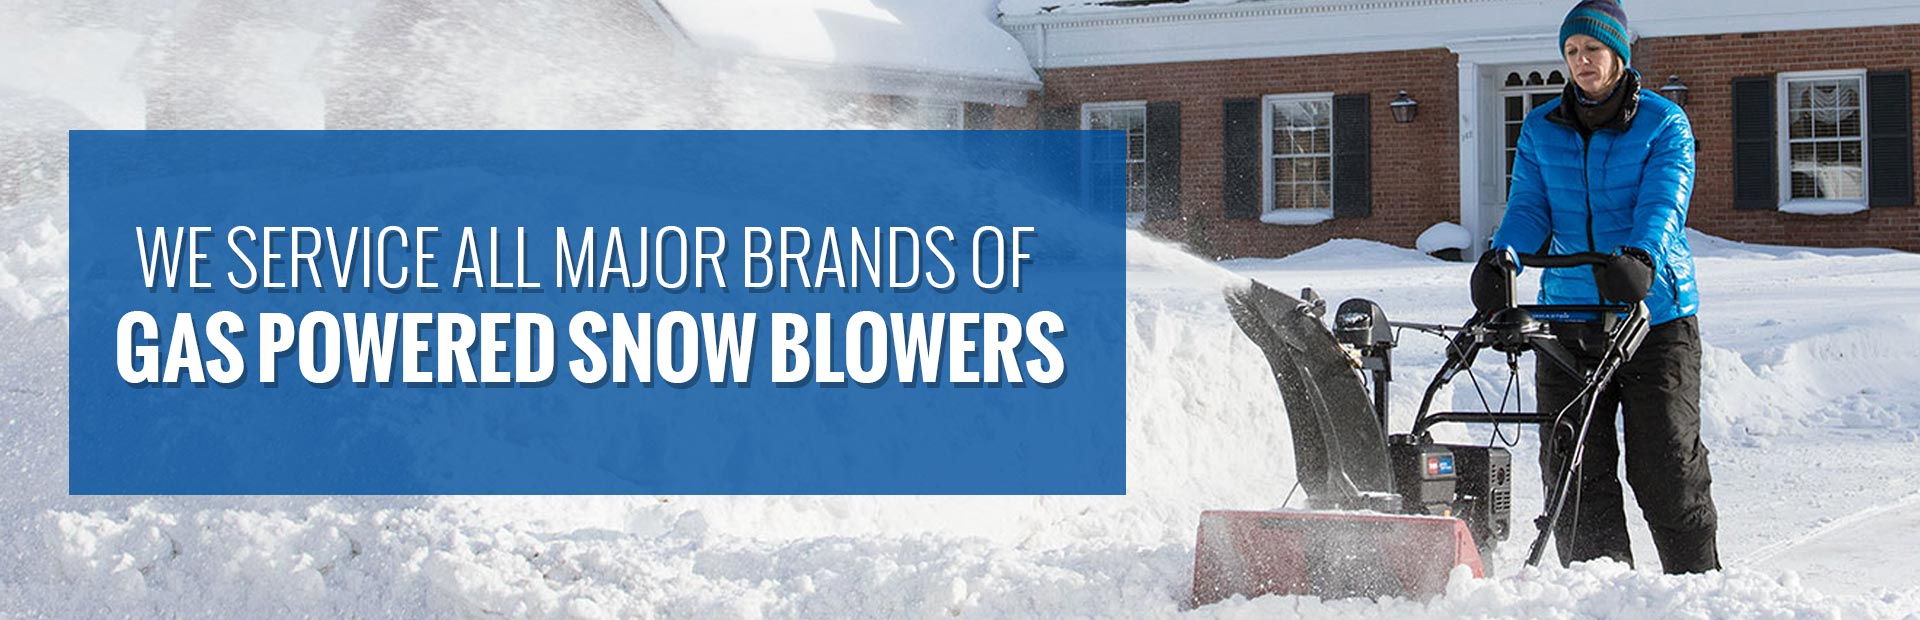 We service all major brands of gas powered snow blowers.